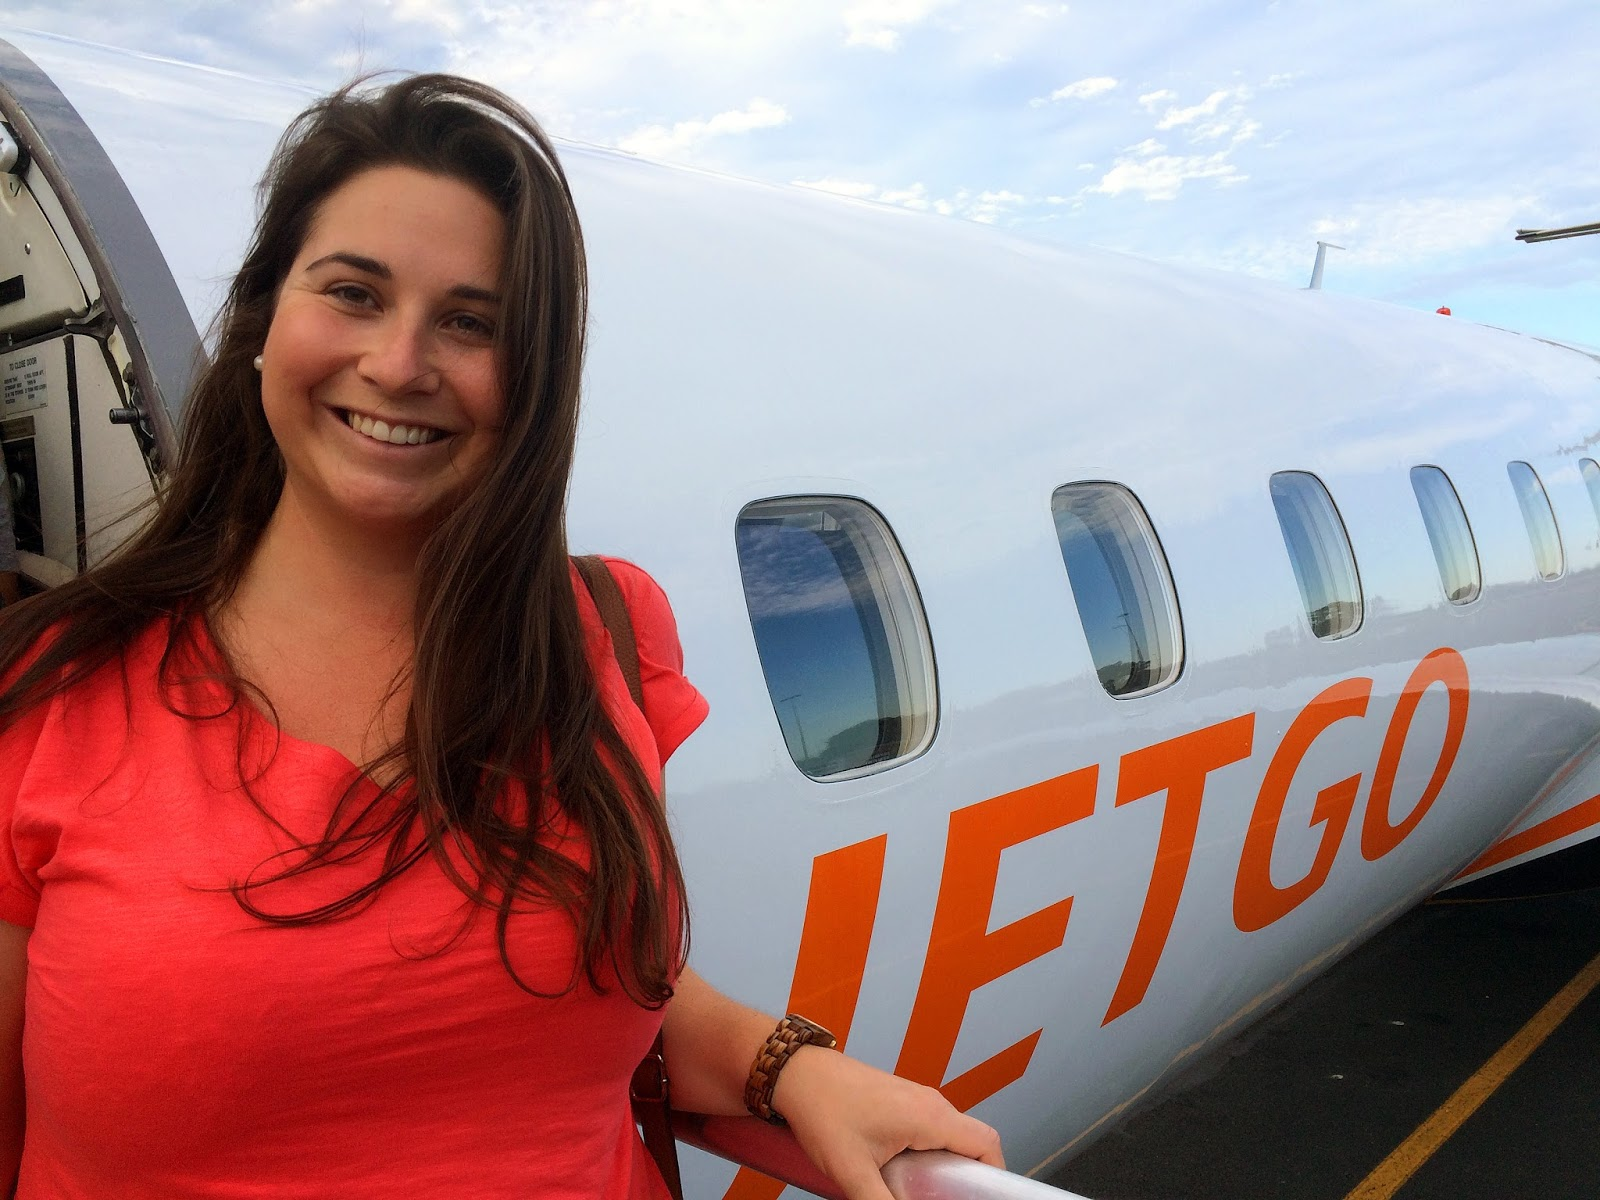 Girl boarding JETGO Australia Plane in Port Macquarie